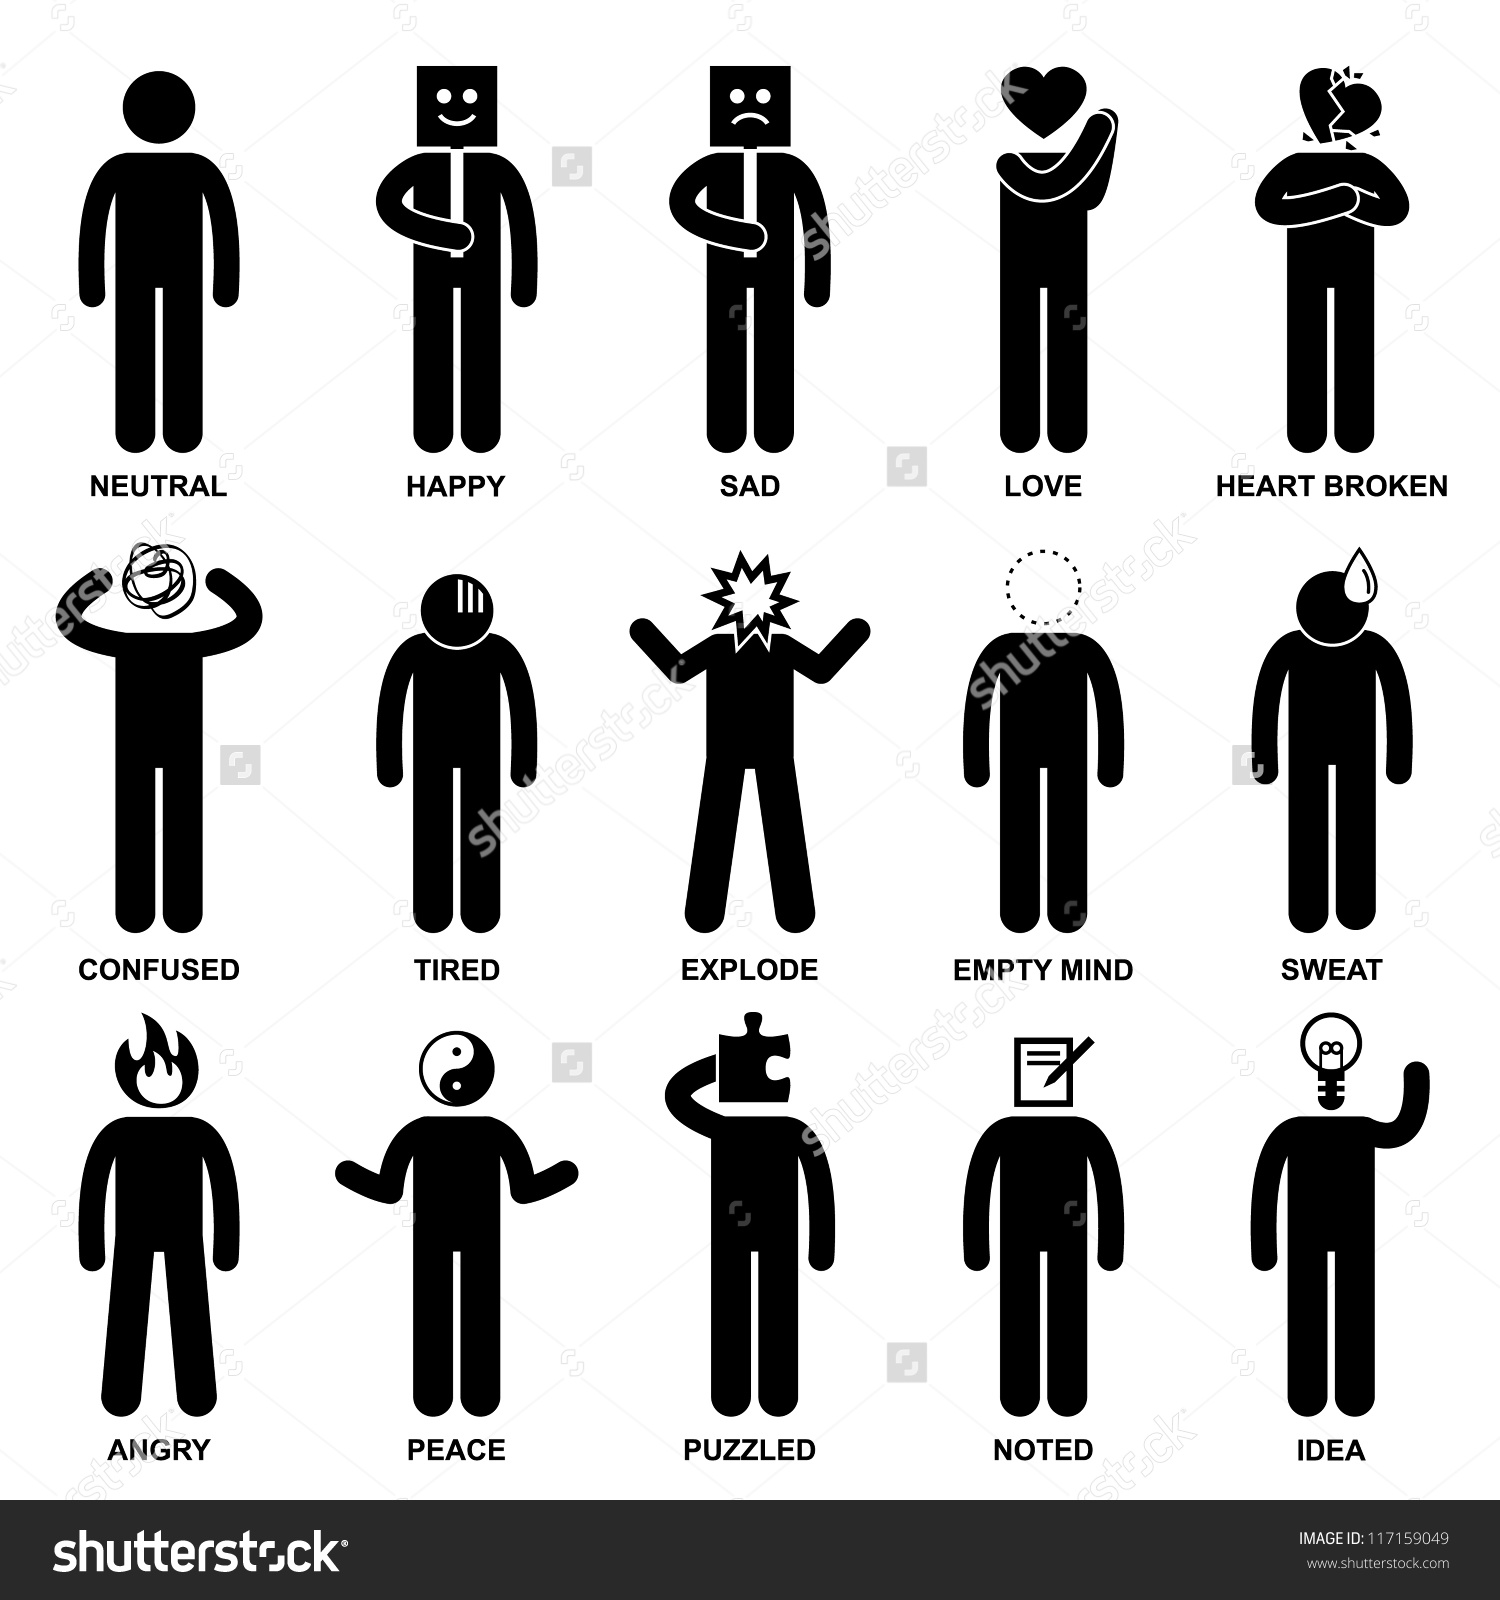 Emotions People Serious Clipart Black And White 20 Free